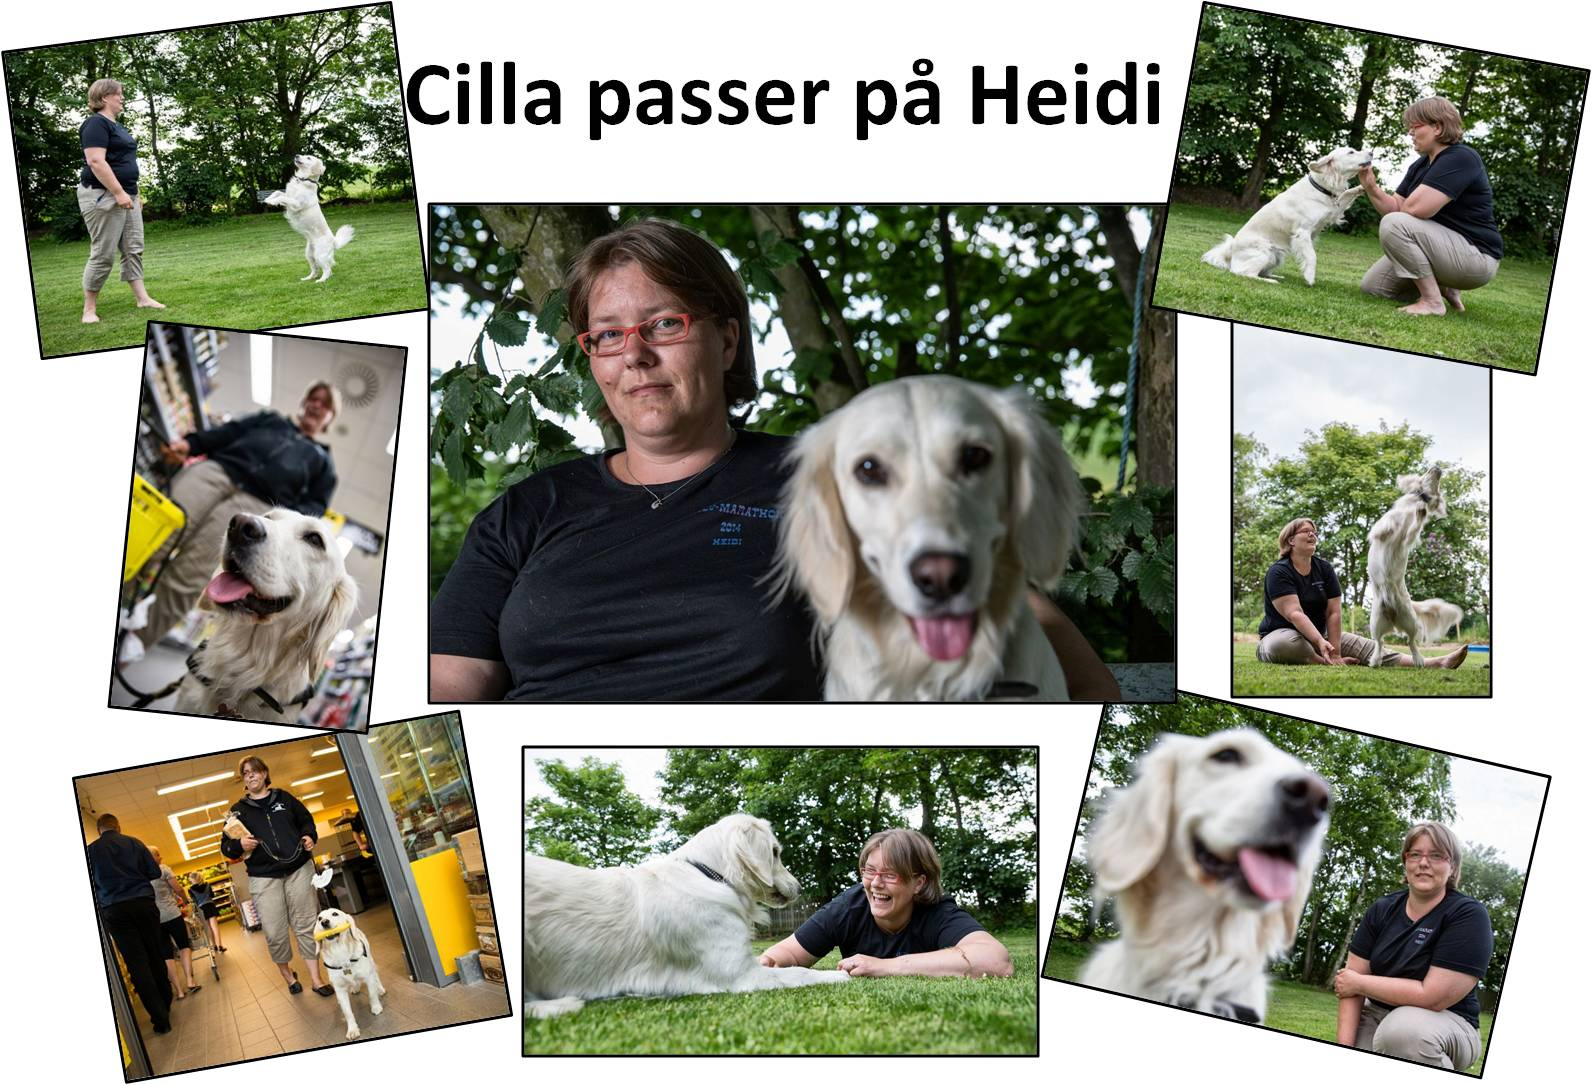 Cilla passer på Heidi collage